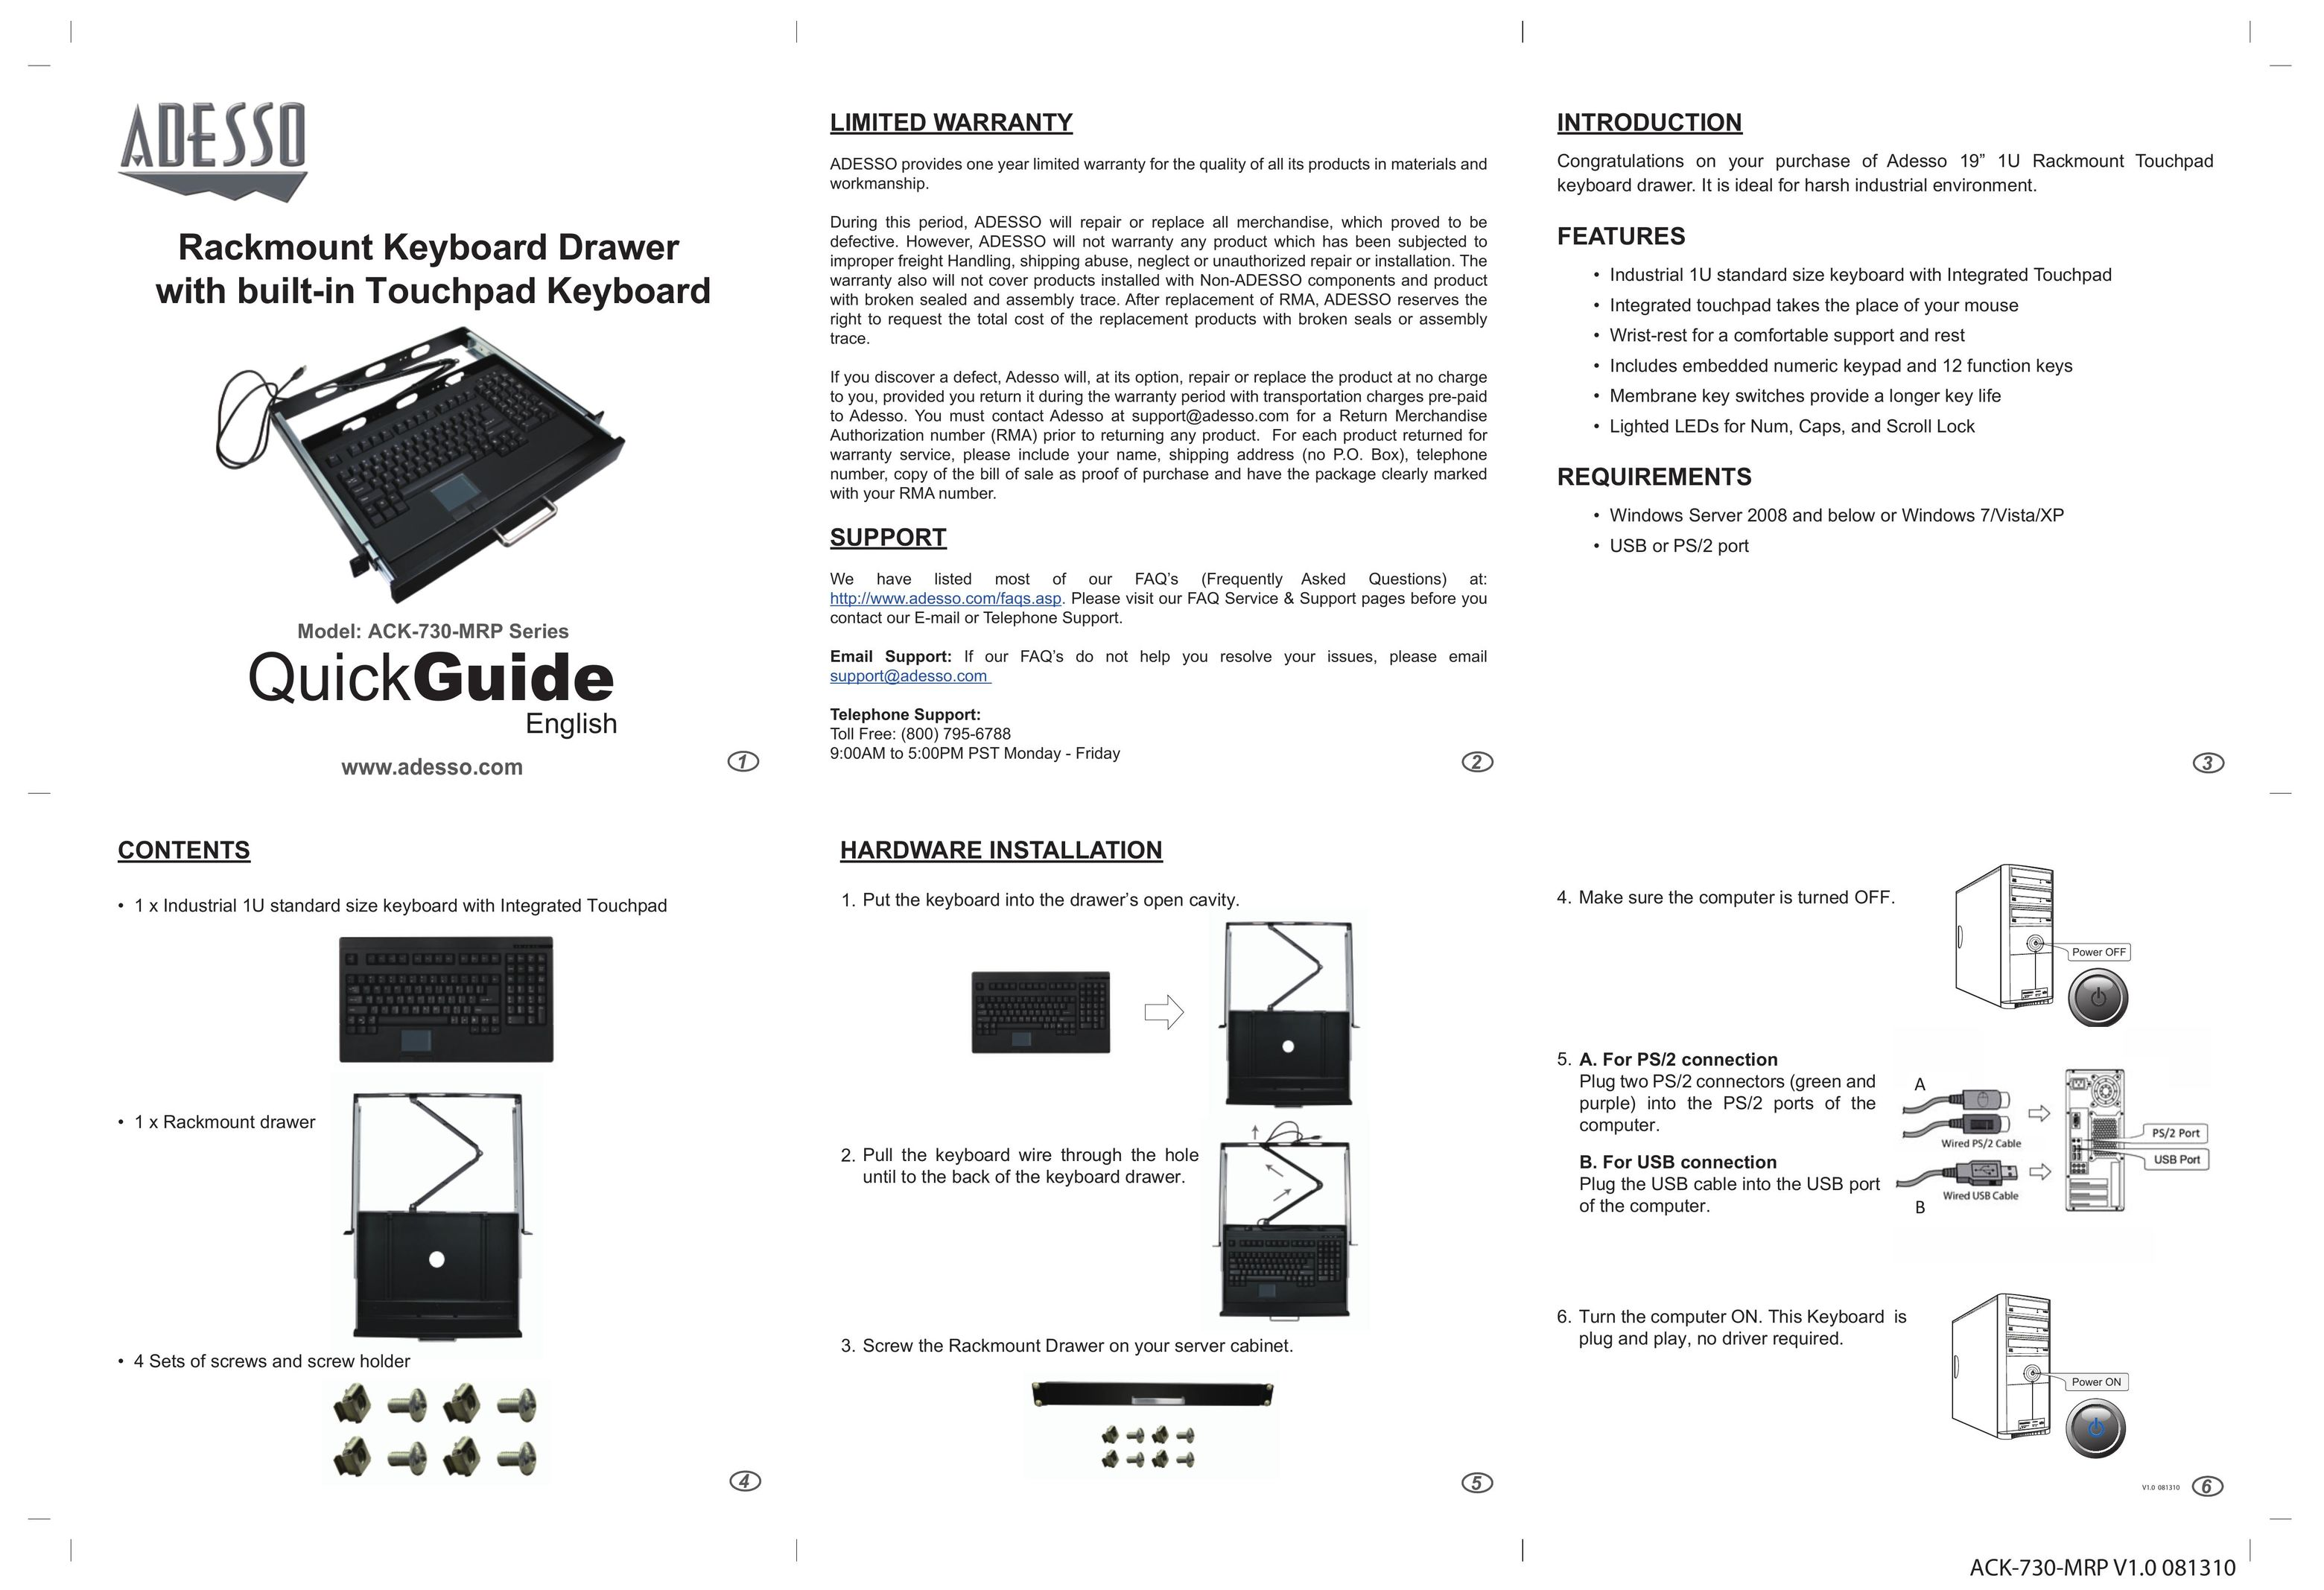 User manuals for Computer Keyboard